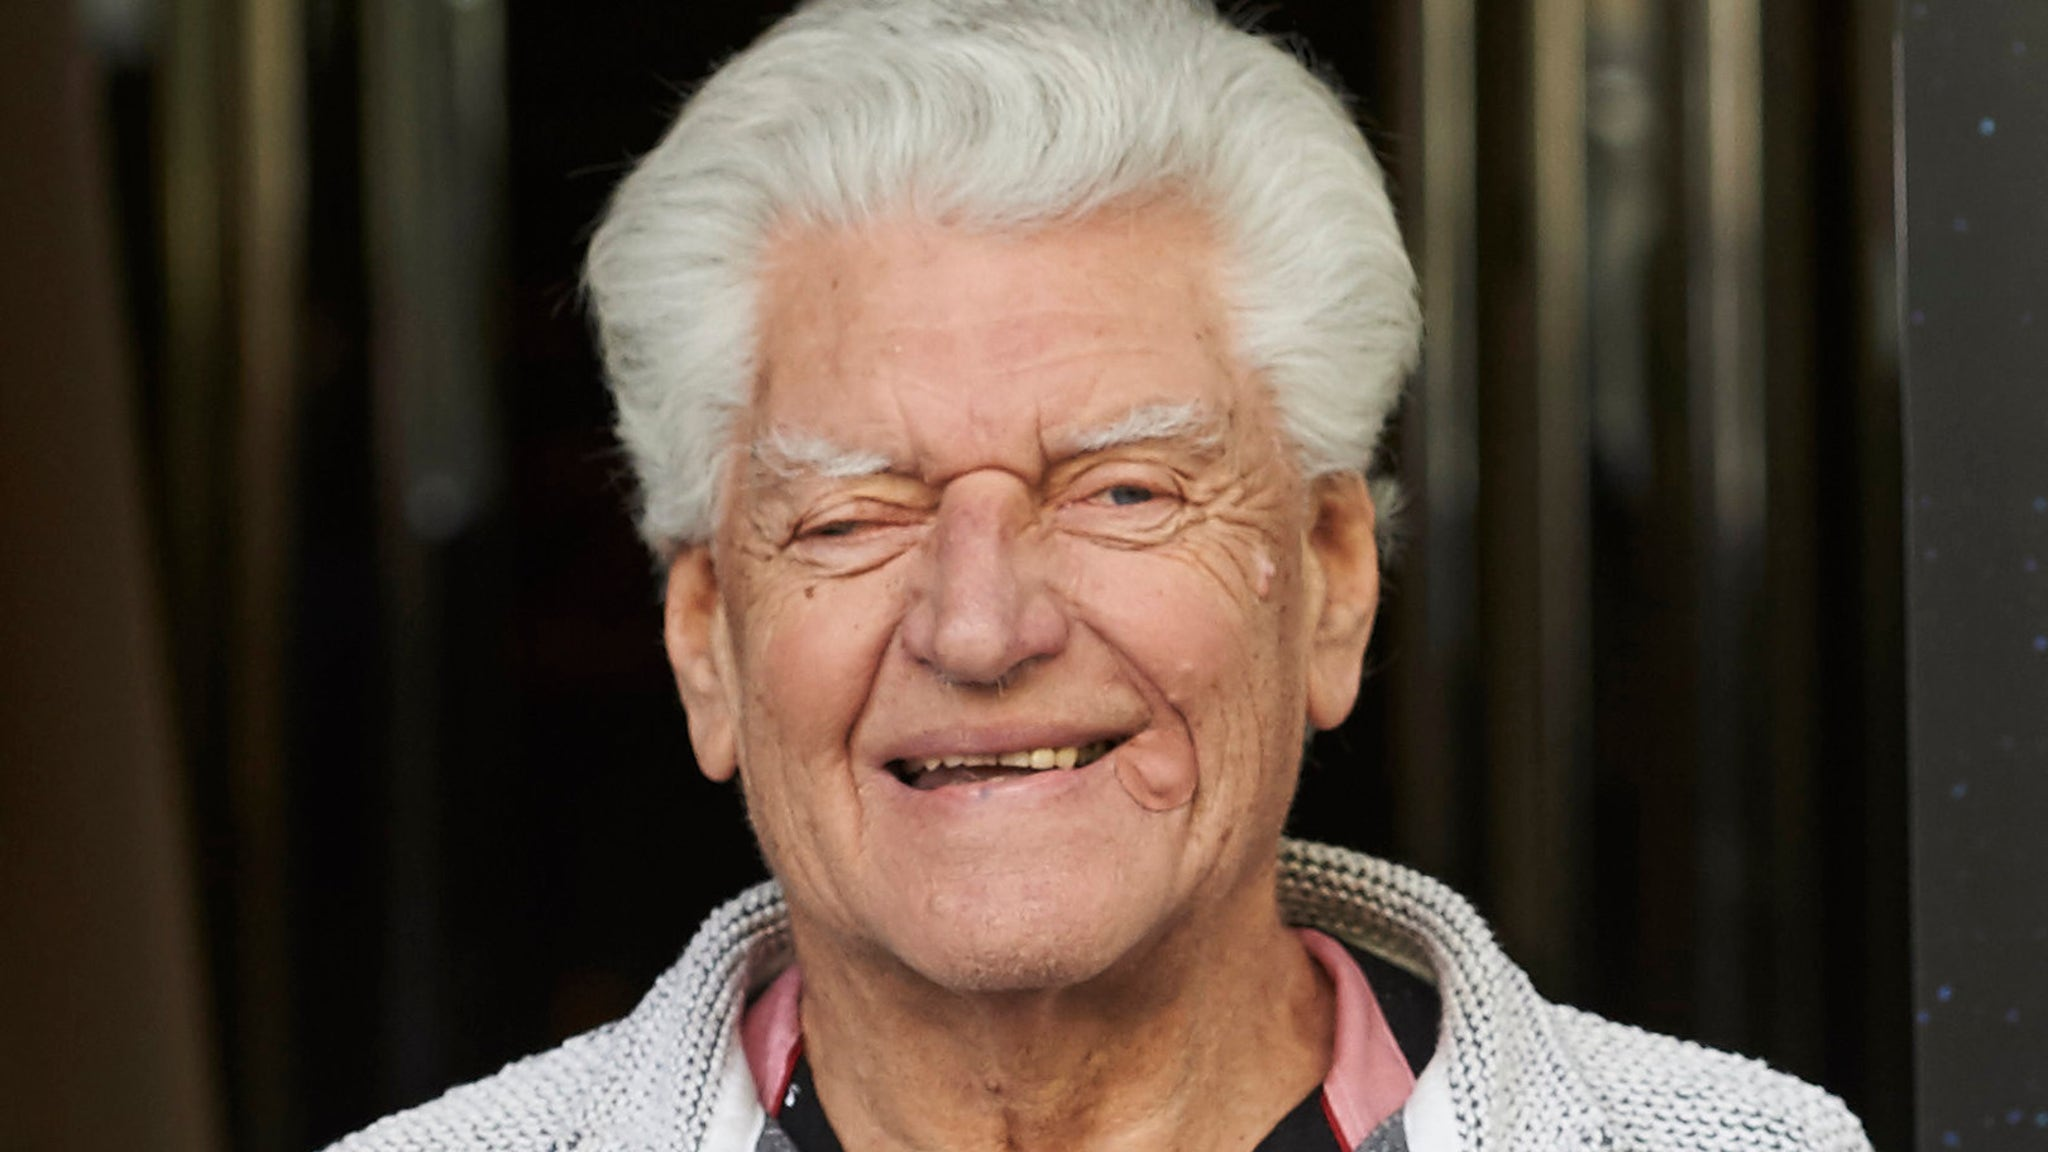 Star Wars Stars and Fans Mourn Death of David Prowse, Man Behind Darth Vader's Mask